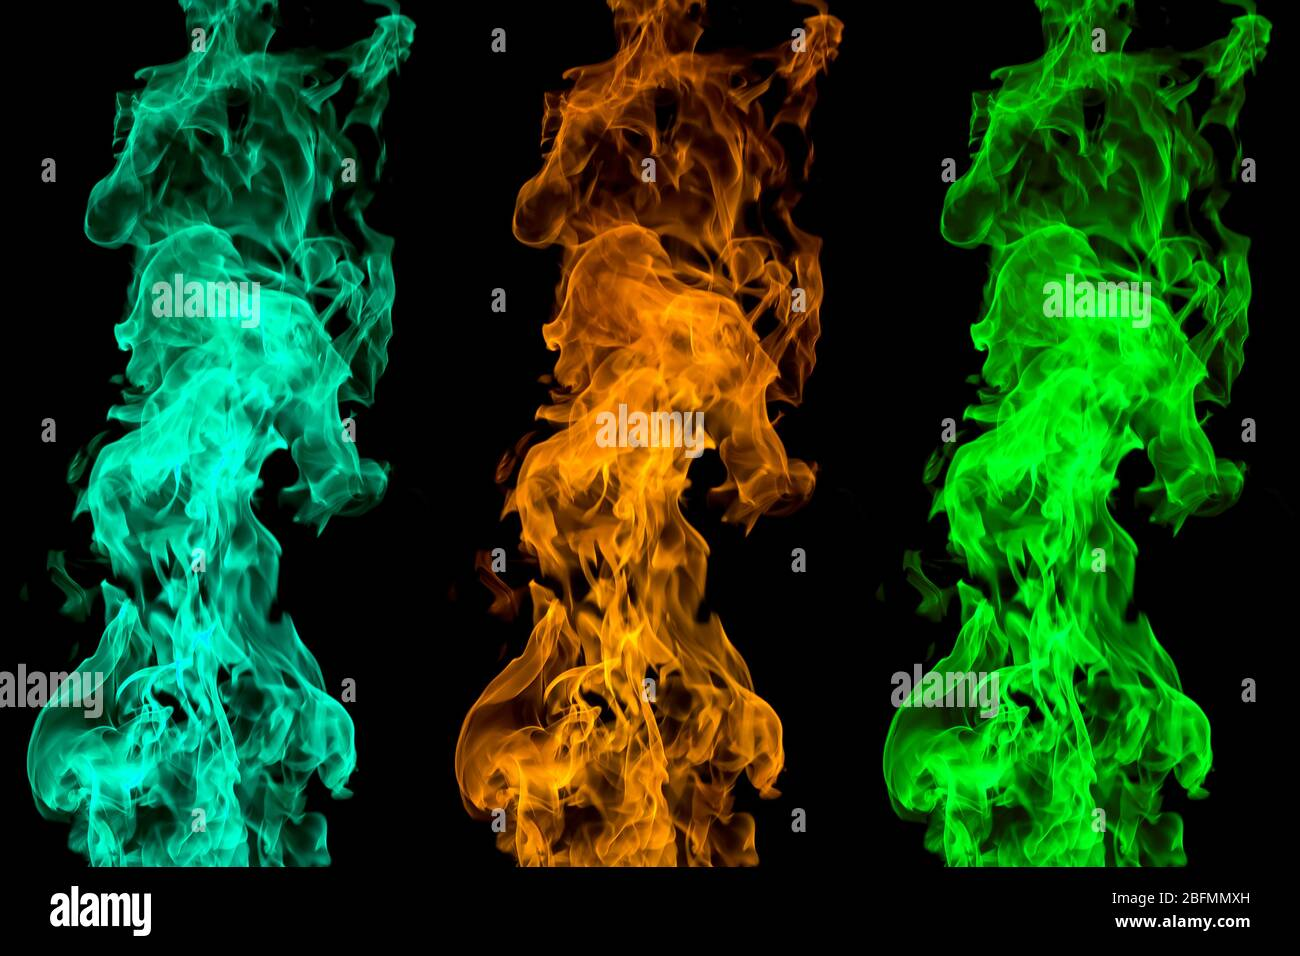 Colored Fire On Black Background Flaming Patterns And Abstract Smoke Concept Idea Project Stock Photo Alamy